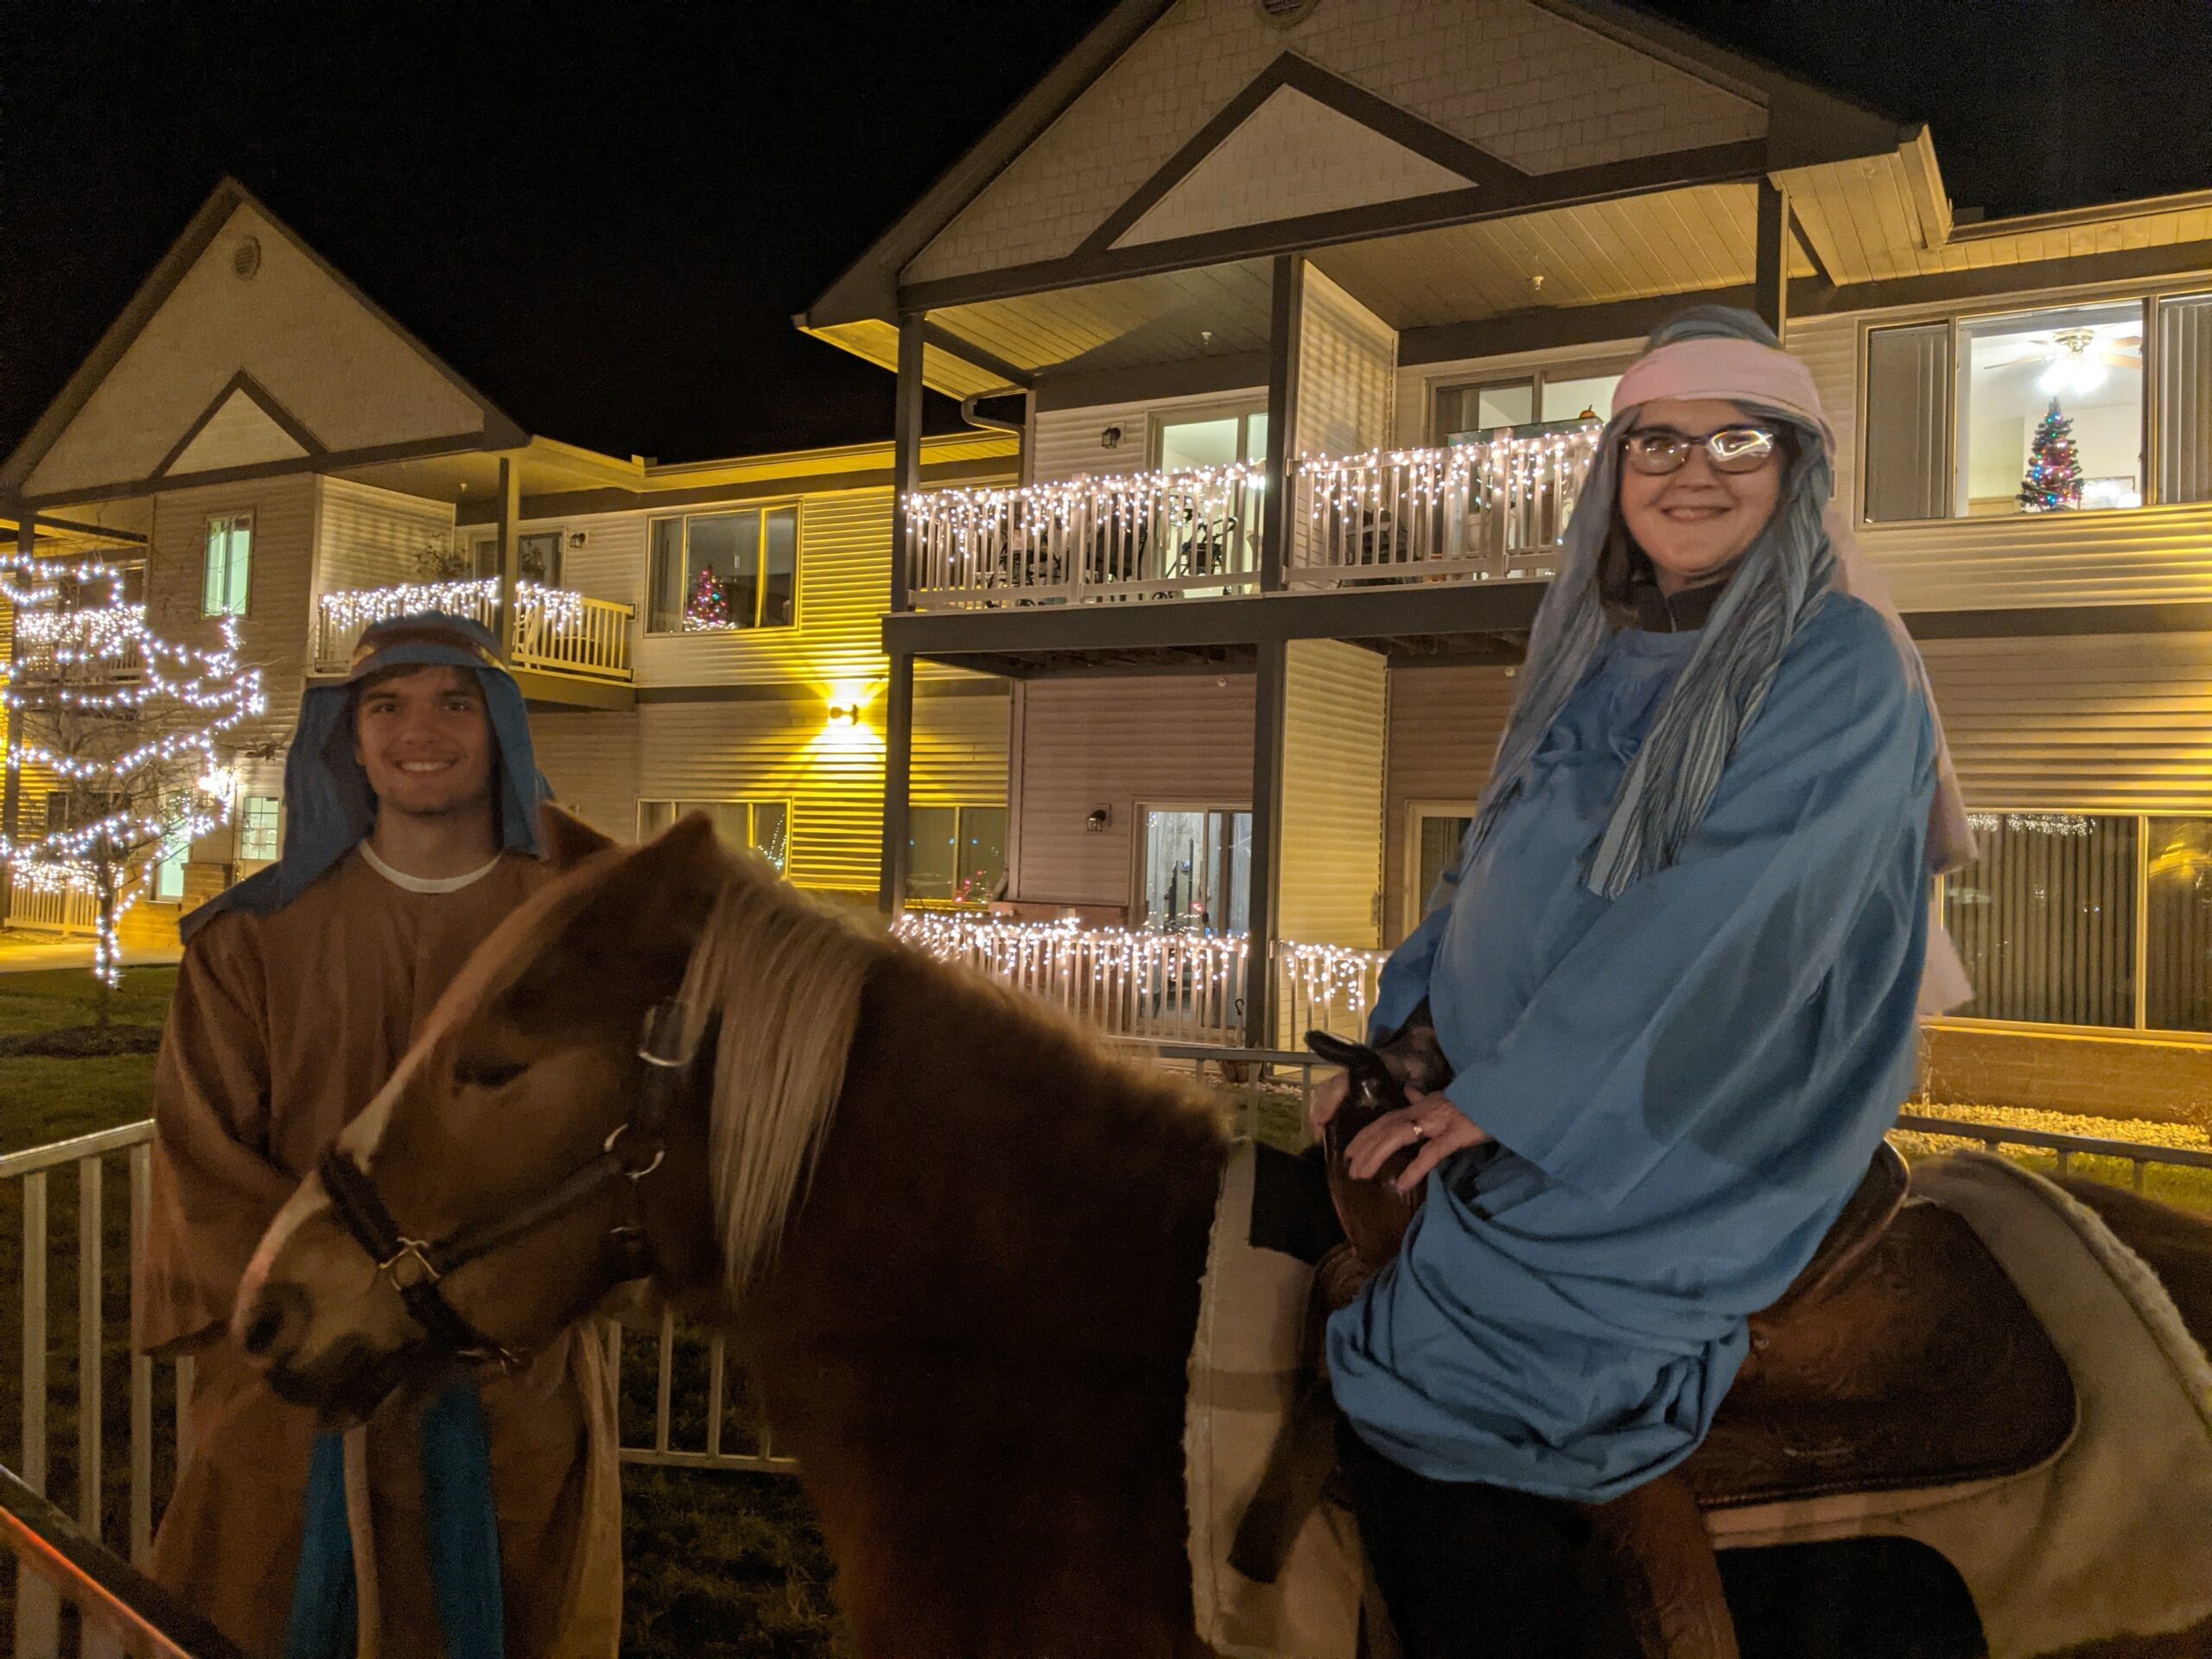 Lisa B. (DON)  And Colton F. (Dietary) were Mary and Joseph for the Live Nativity.